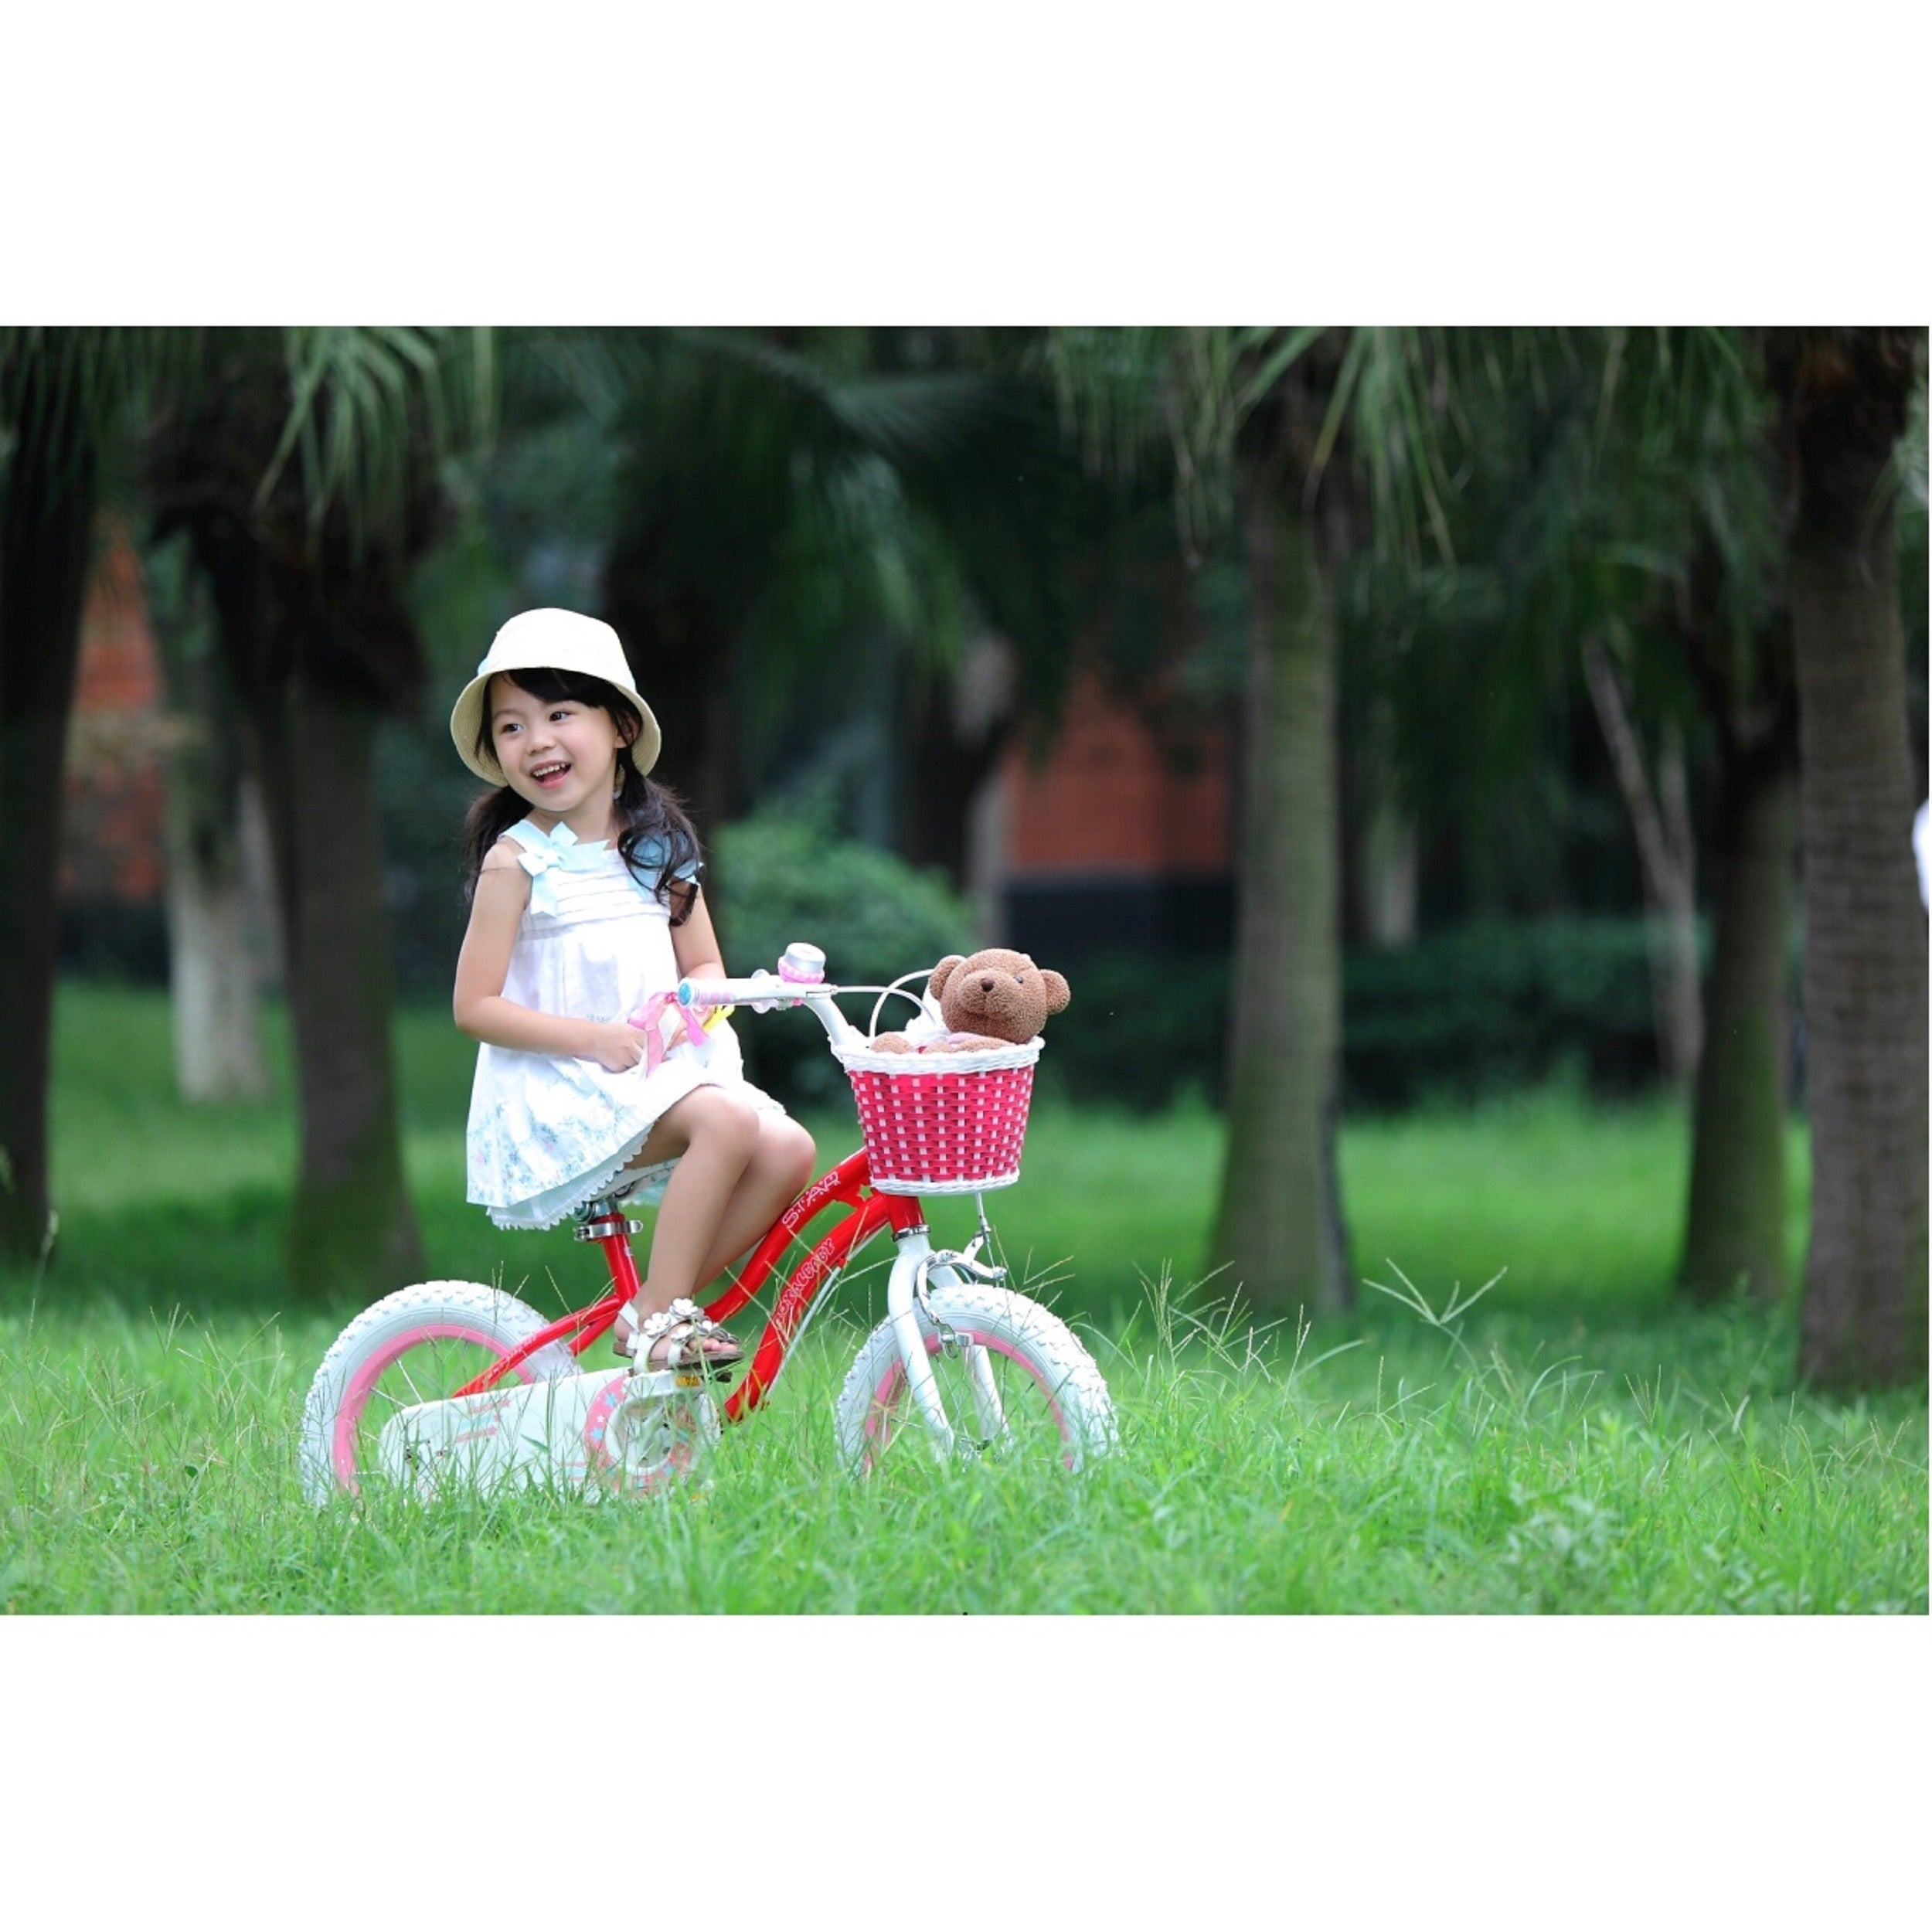 a43ac0d13d11 Shop Royalbaby Stargirl 14-inch Kids' Bike with Training Wheels and Basket  - Free Shipping Today - Overstock - 9821893